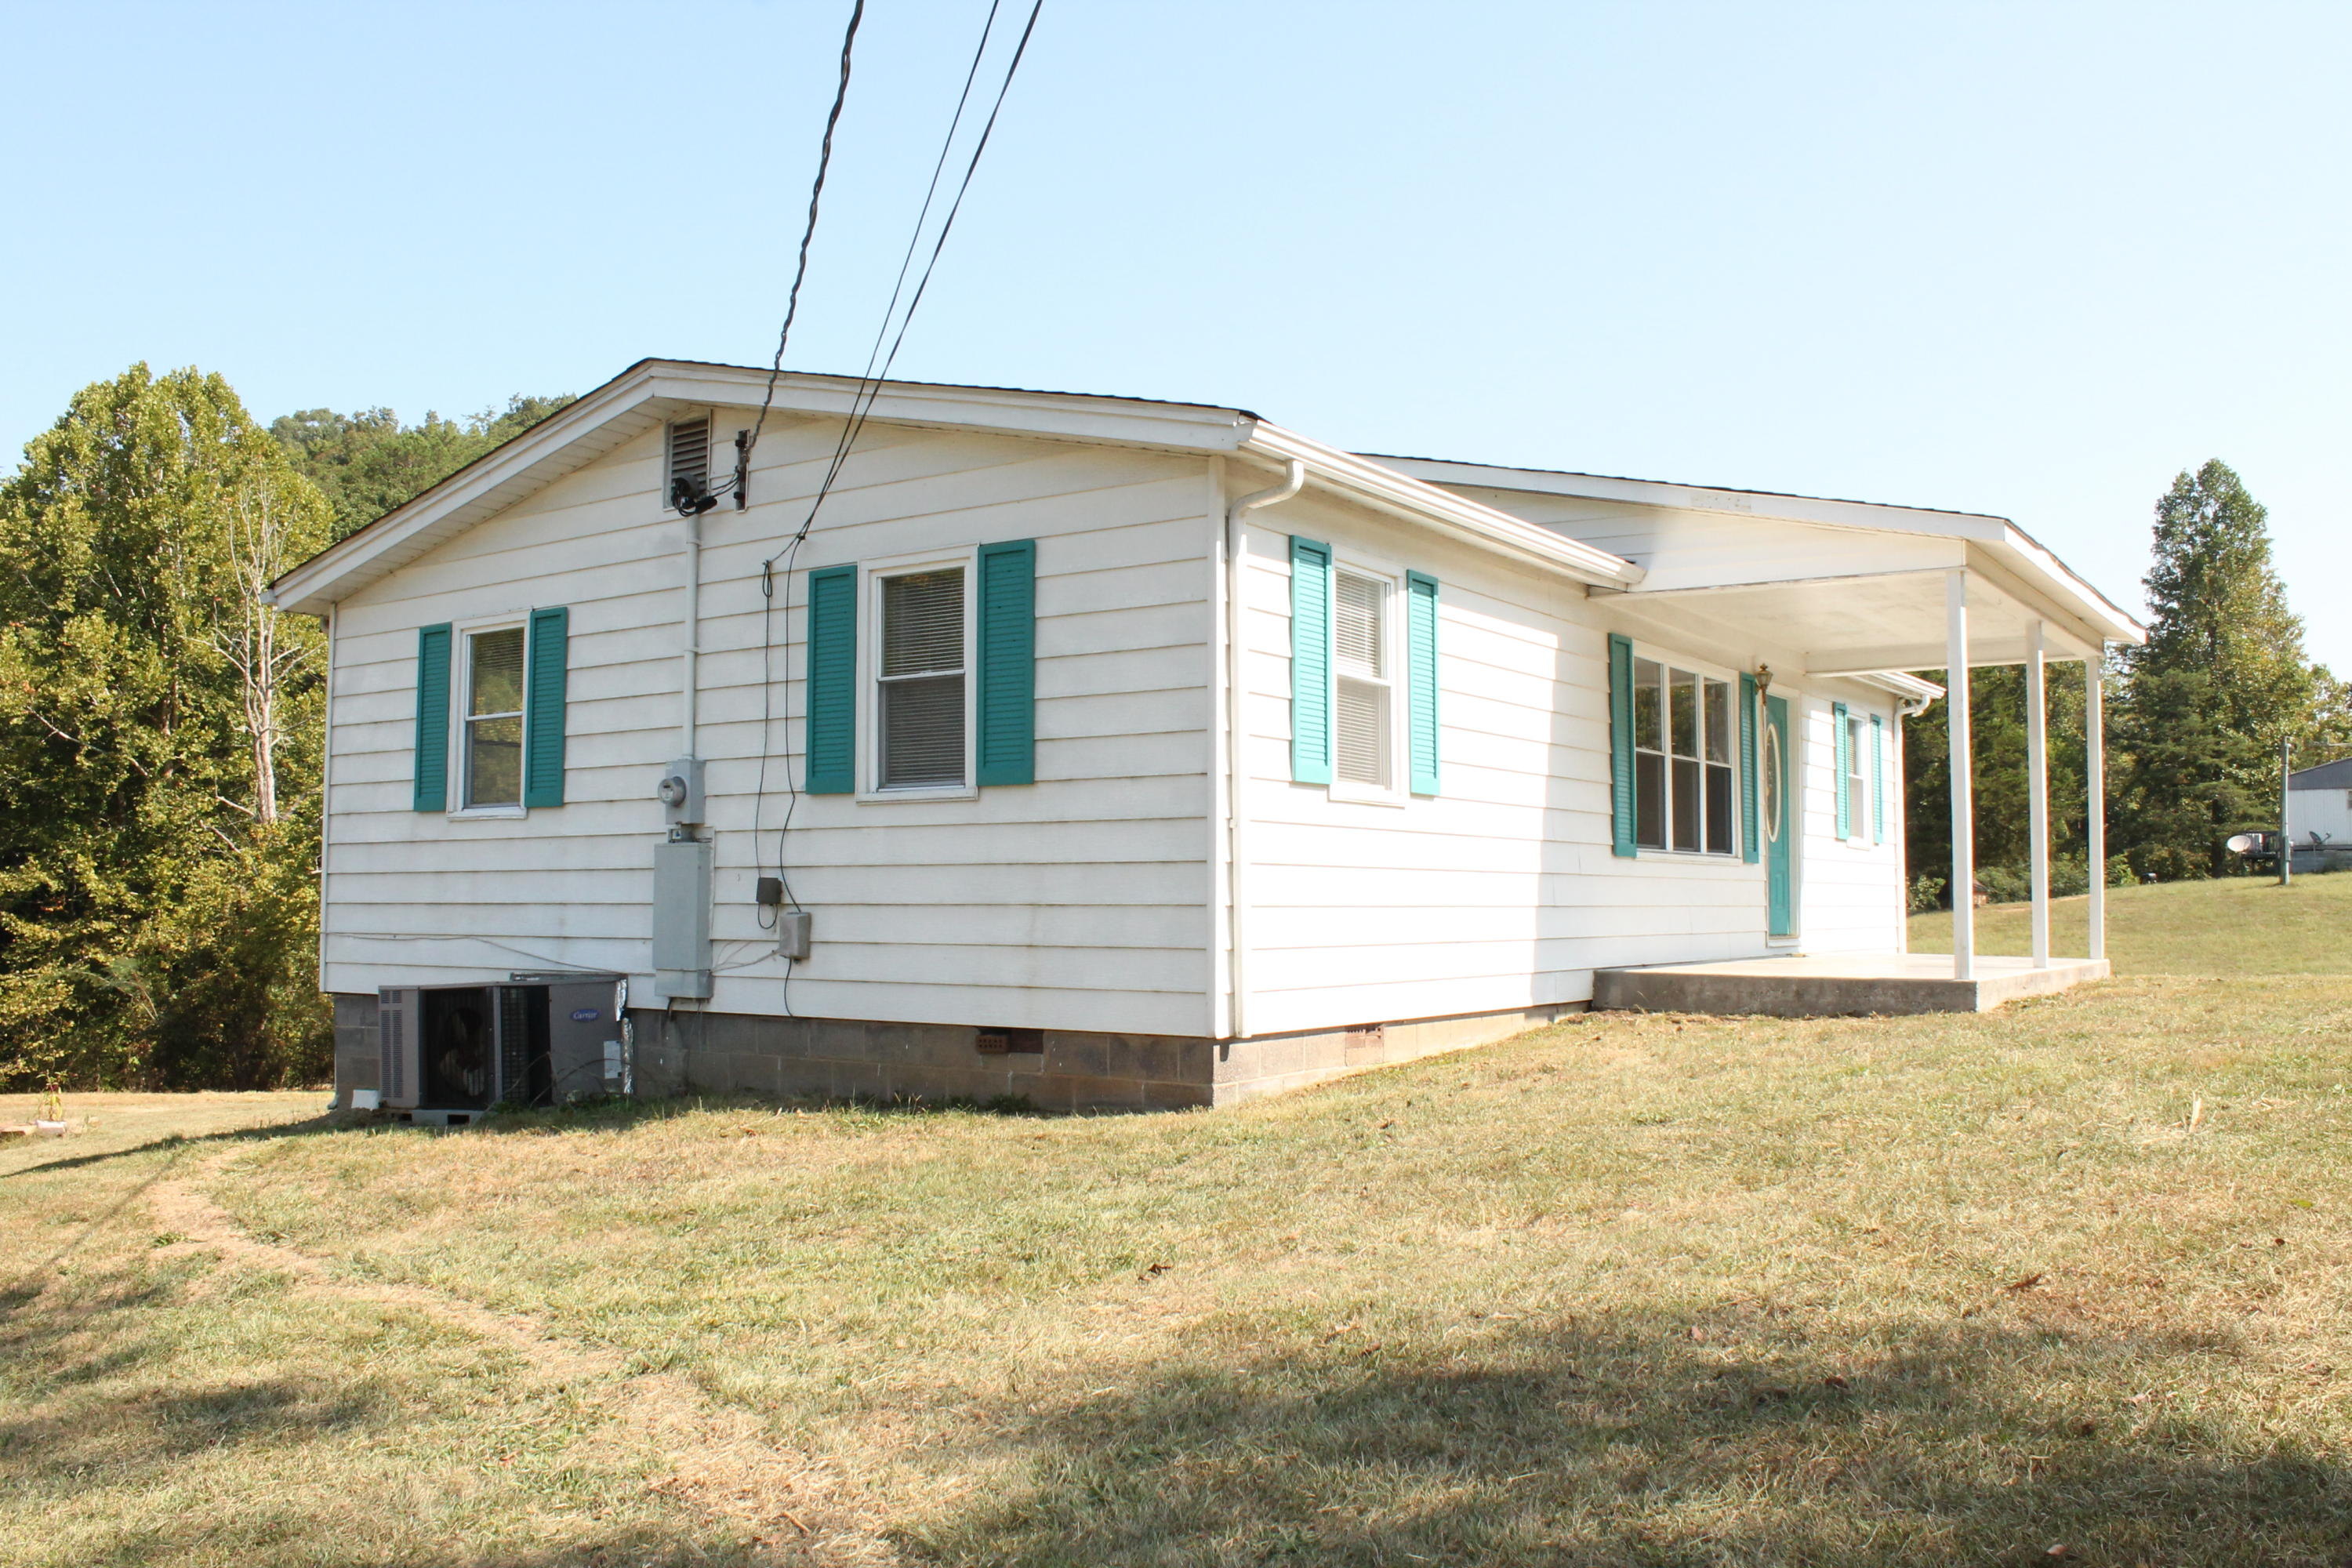 217 Highway 370, Luttrell, Tennessee 37779, 3 Bedrooms Bedrooms, ,1 BathroomBathrooms,Single Family,For Sale,Highway 370,1094505